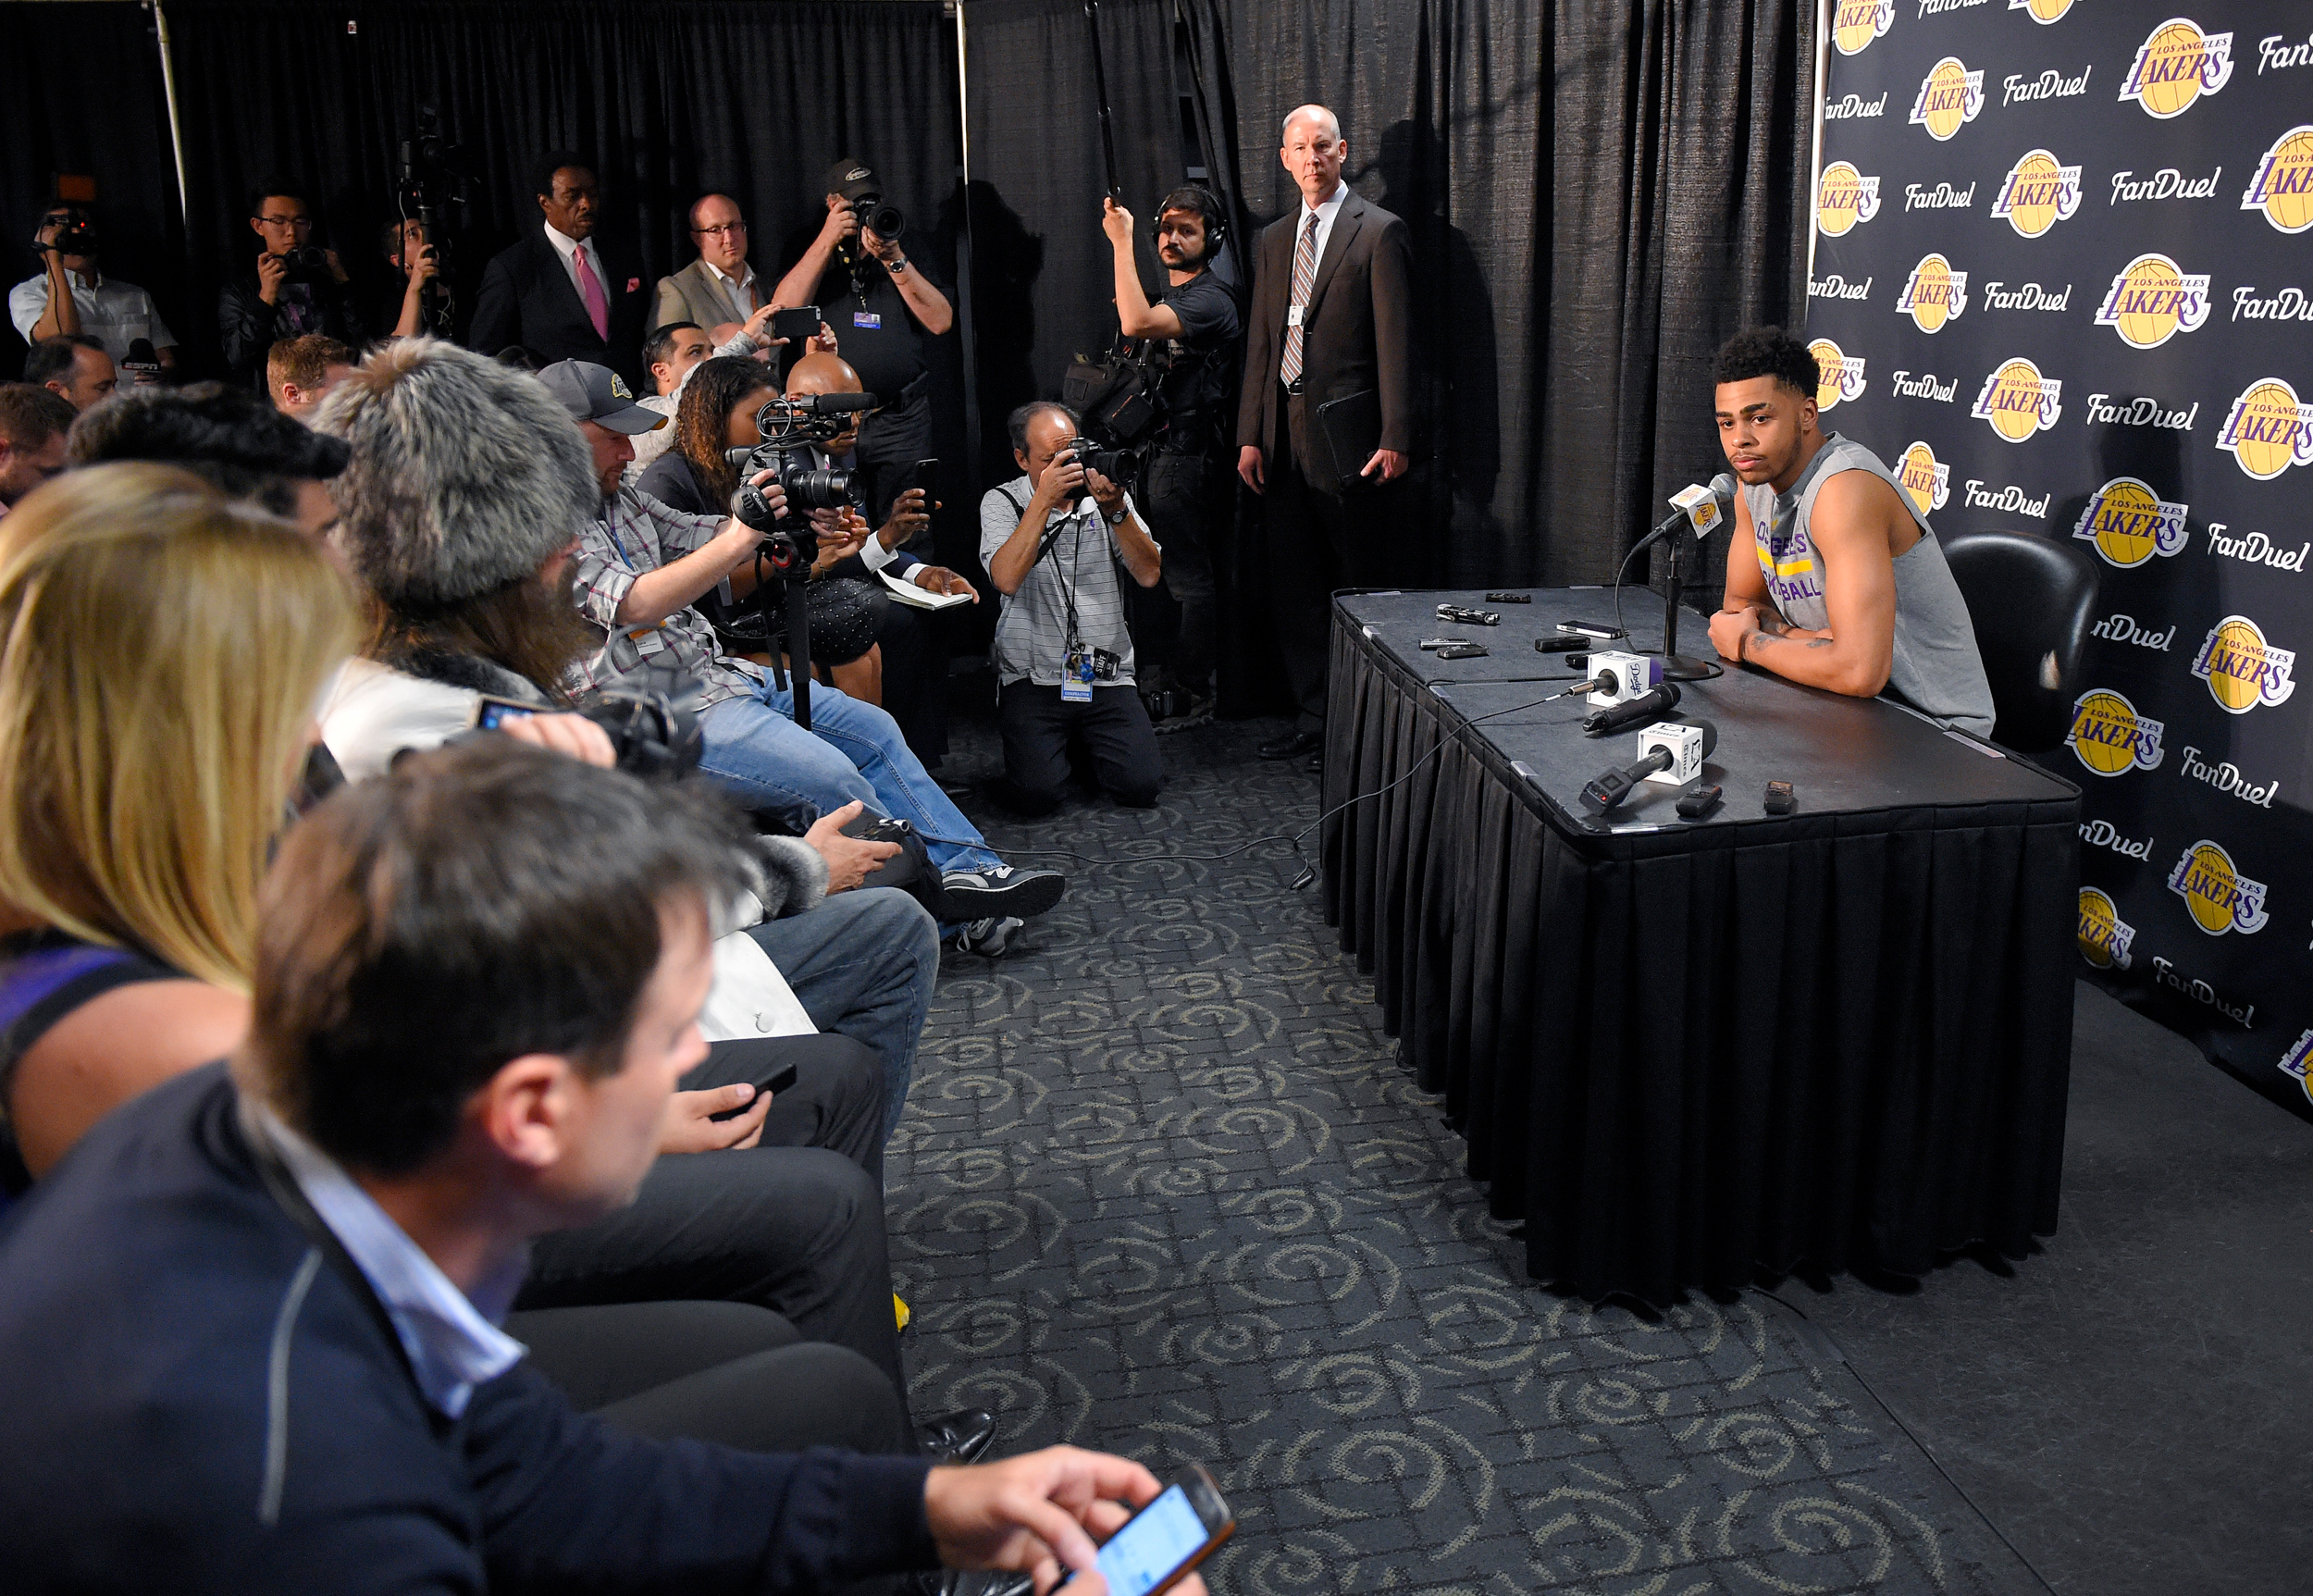 Los Angeles Lakers guard D'Angelo Russell speaks to the media prior to the team's NBA basketball game against the Miami Heat, Wednesday, March 30, 2016, in Los Angeles. Russell apparently recorded a video in which he asked teammate Nick Young about being with women other than his fiancee, rapper Iggy Azalea. The video began circulating online in the past week.